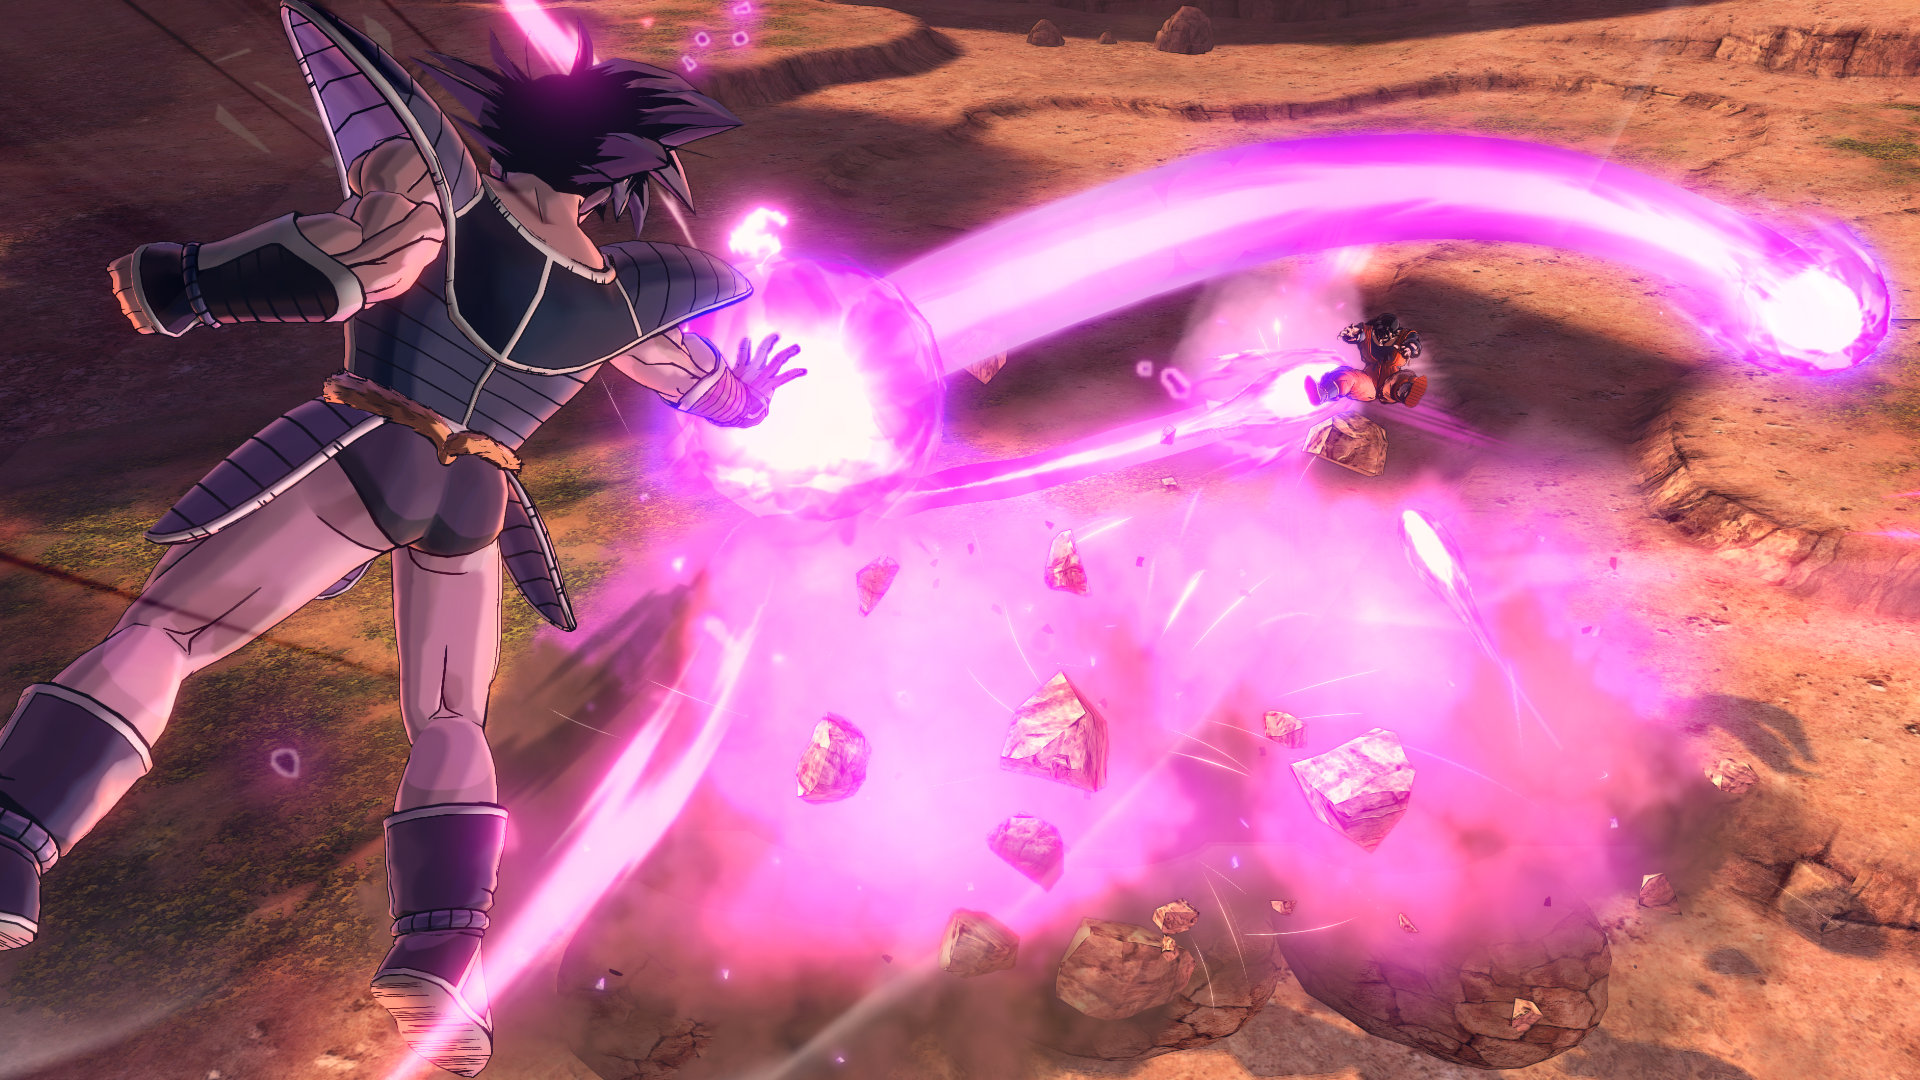 dragonball-xenoverse-2-screen-01-ps4-us-